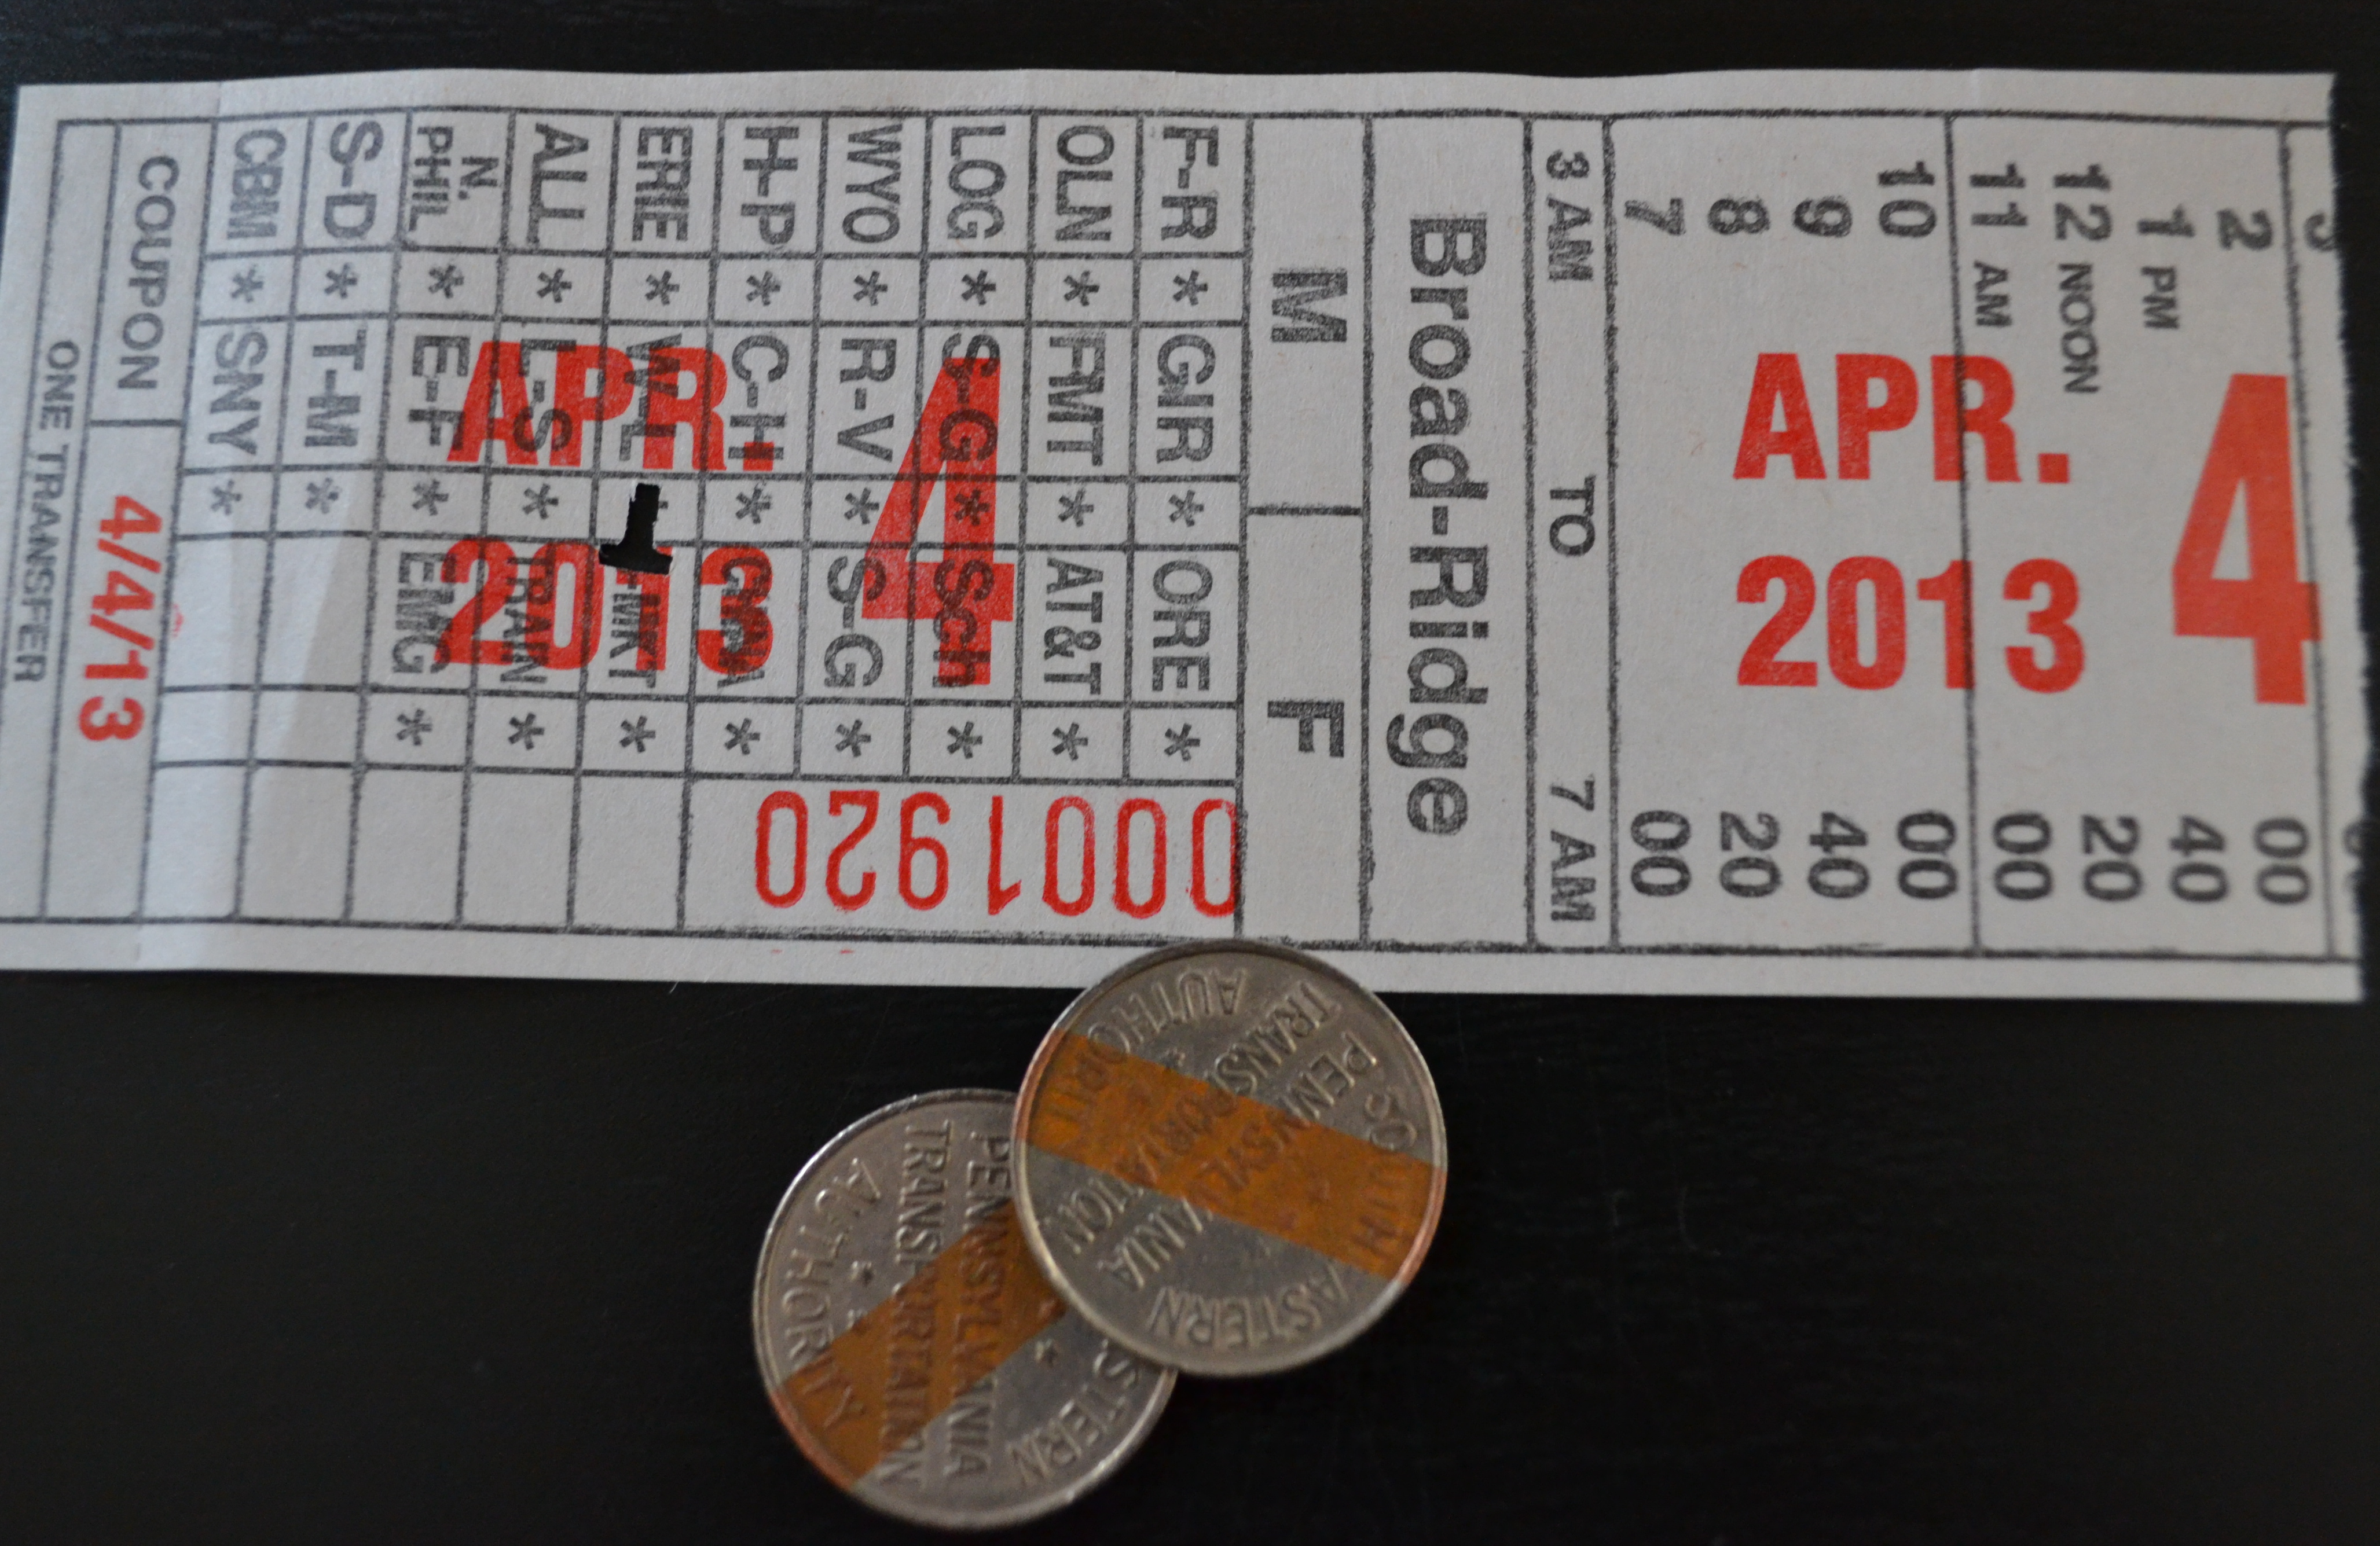 SEPTA is working to phase out tokens and paper transfers by mid 2014